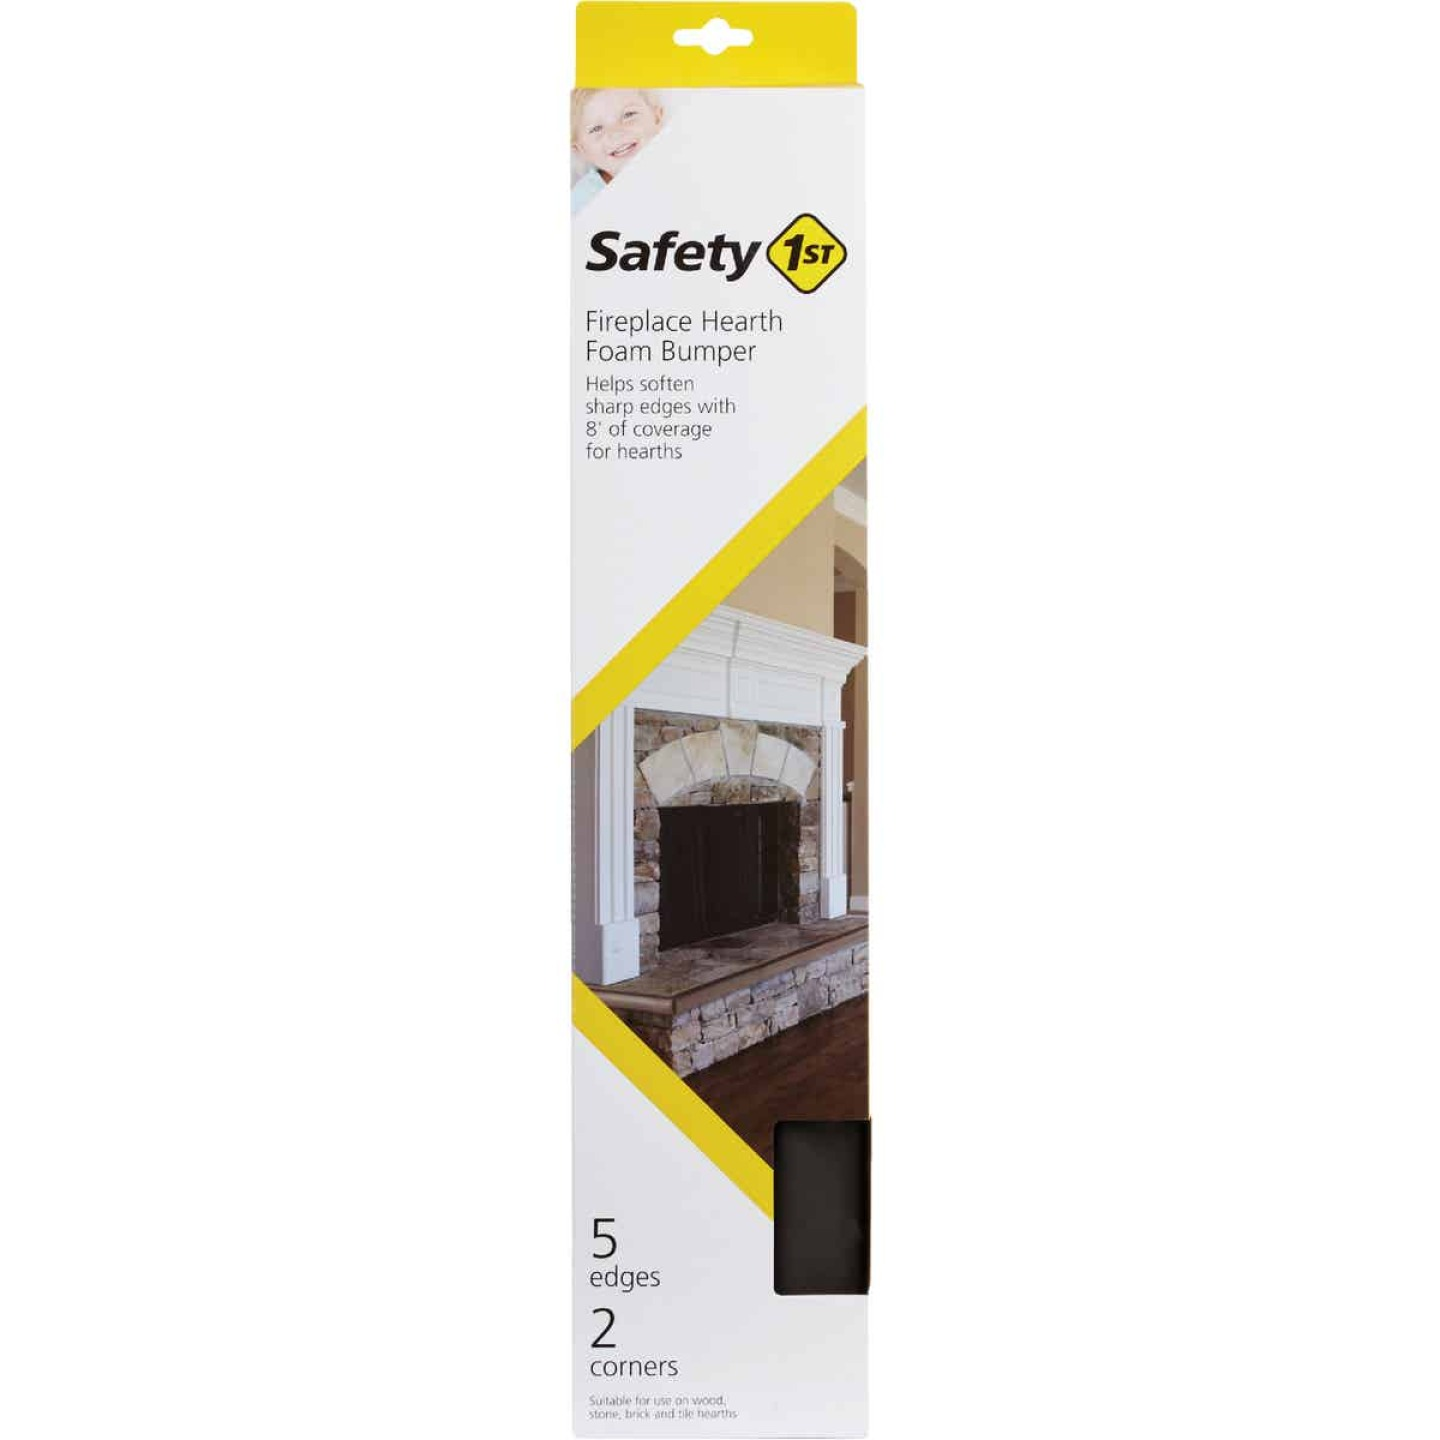 Safety 1st Adhesive Foam Brown Fireplace Guard Foam Bumper Image 3